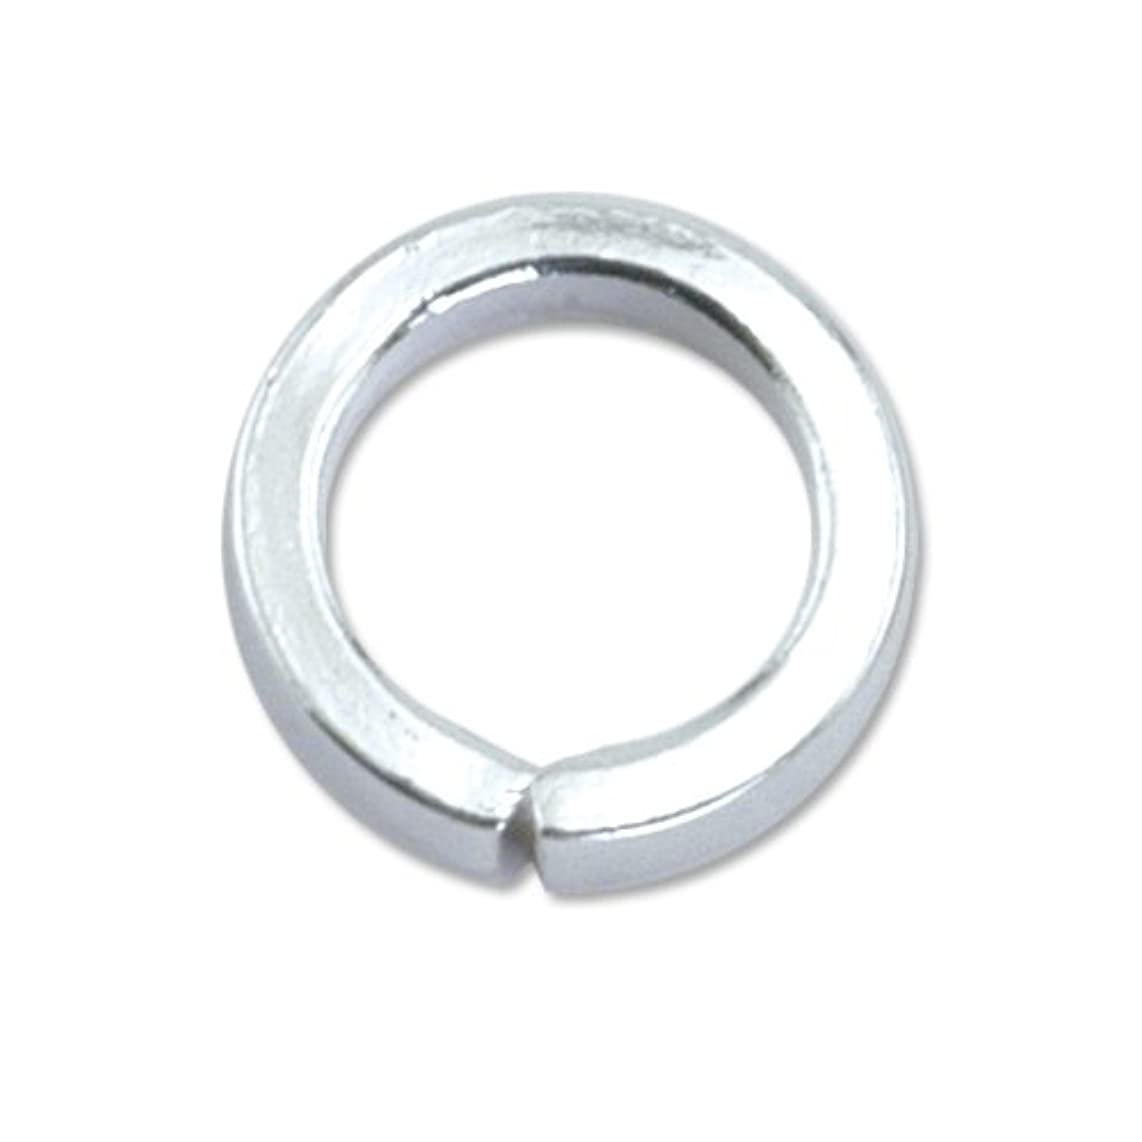 Beadalon Jump Ring Round 7.6mm Nickel Free Silver, Plated, 20-Piece